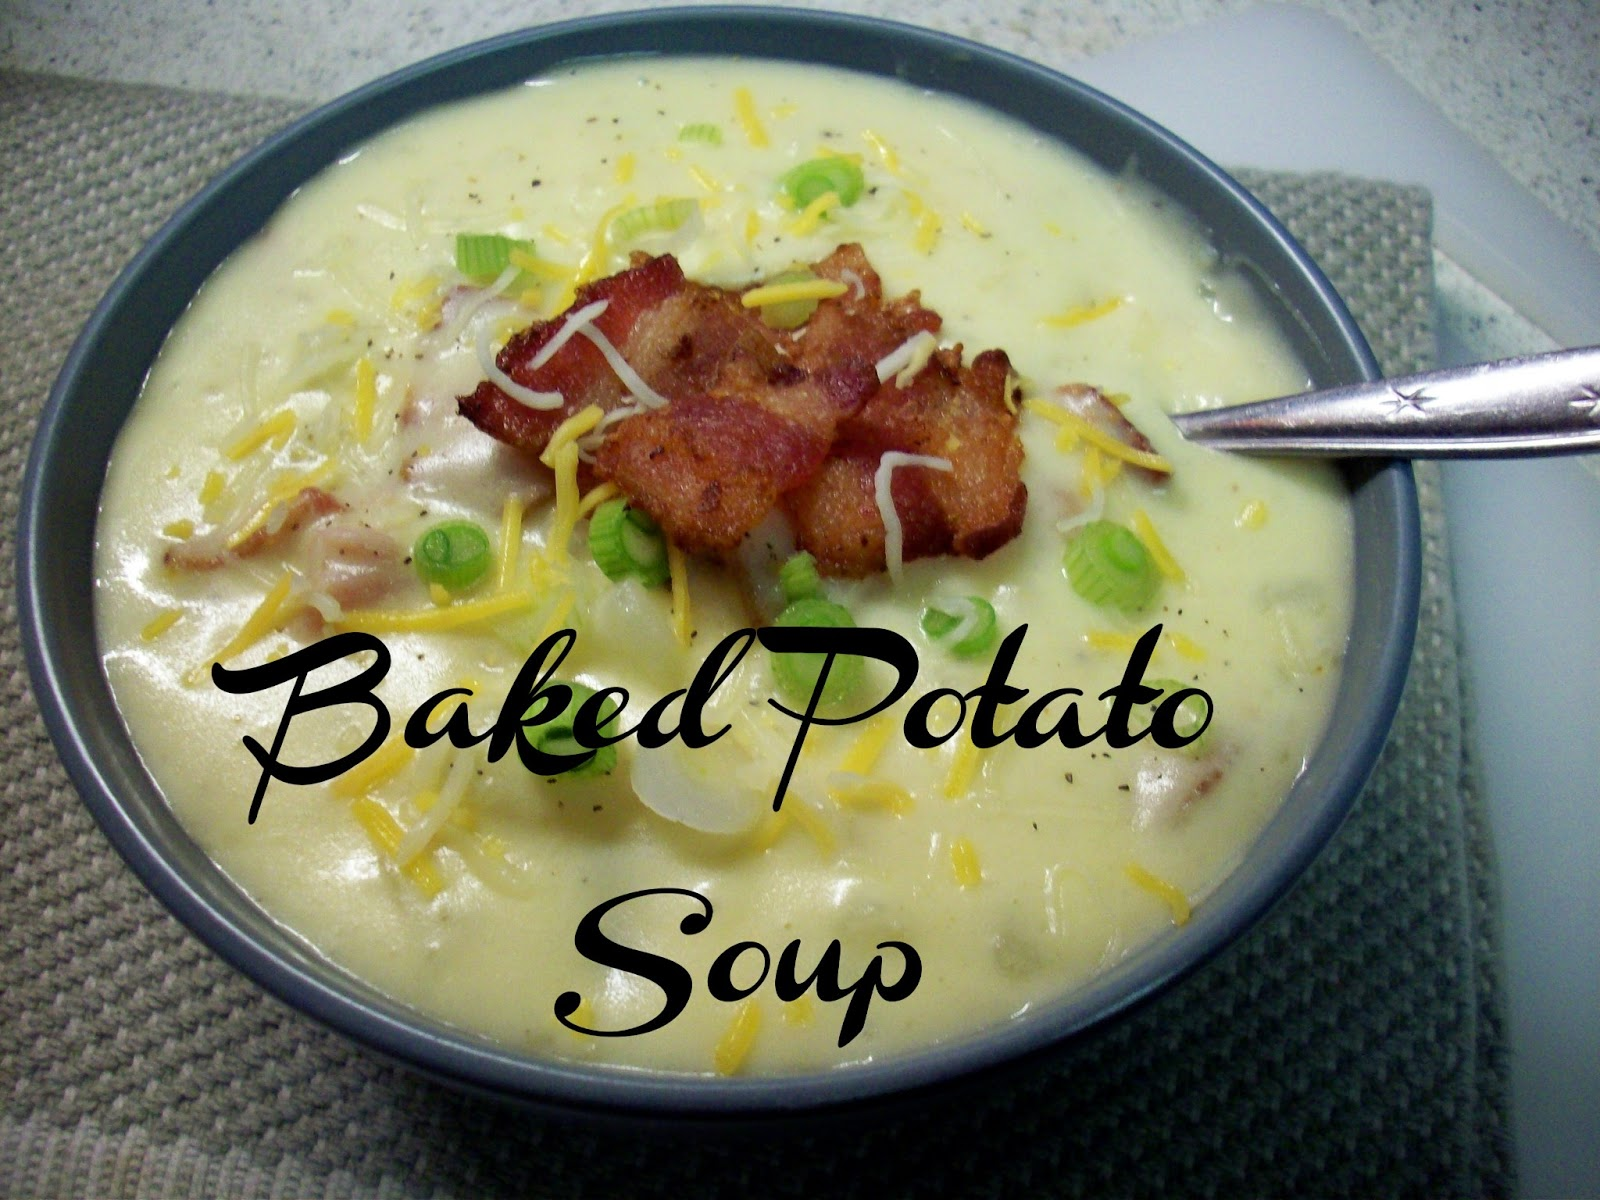 Shannon's Baked Potato Soup (freezes nicely) - Summer Scraps